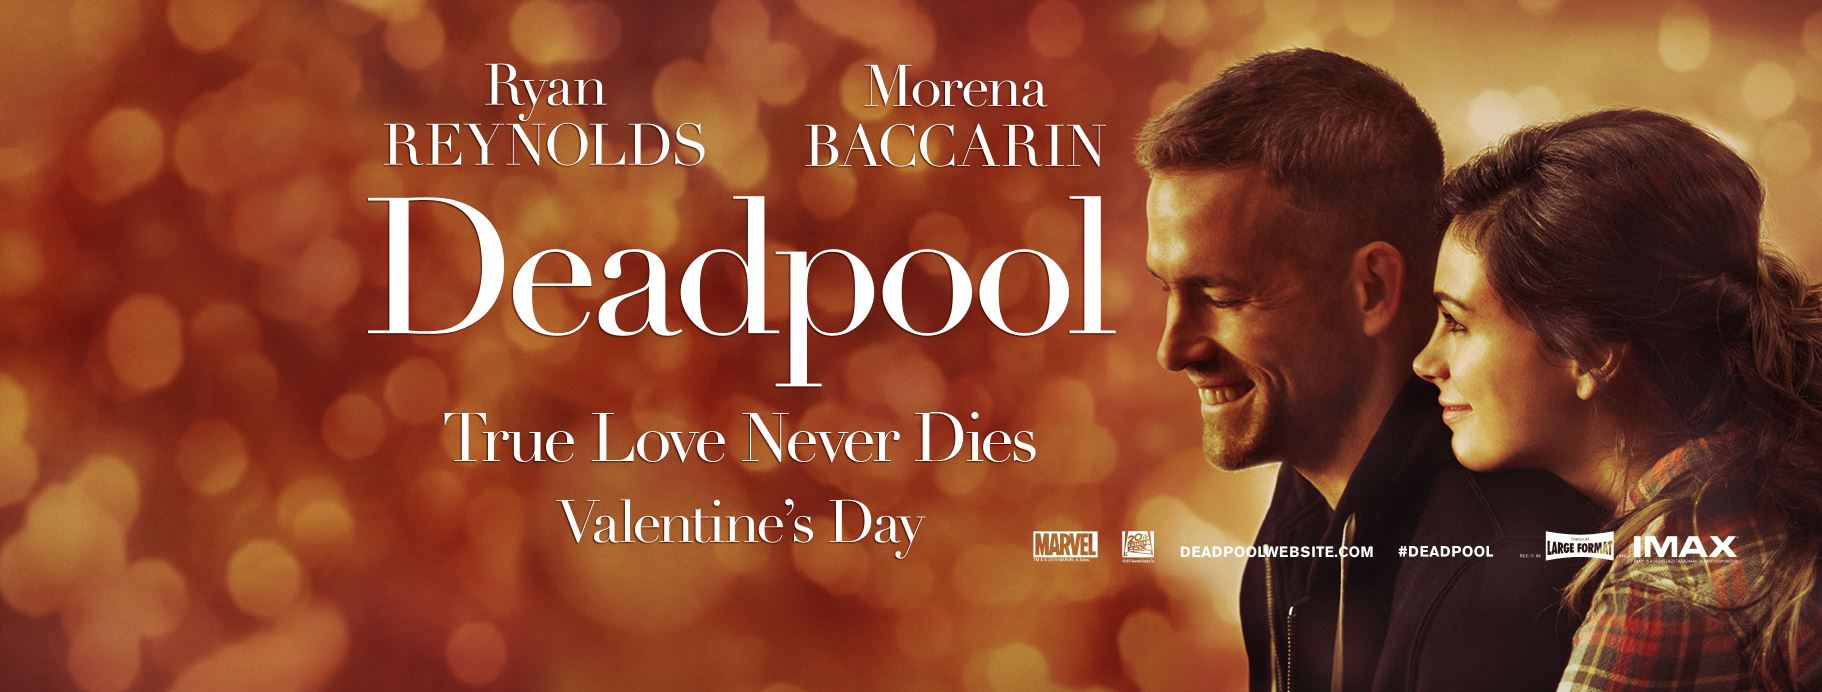 Deadpool Banner Takes Film S Marketing In New Direction